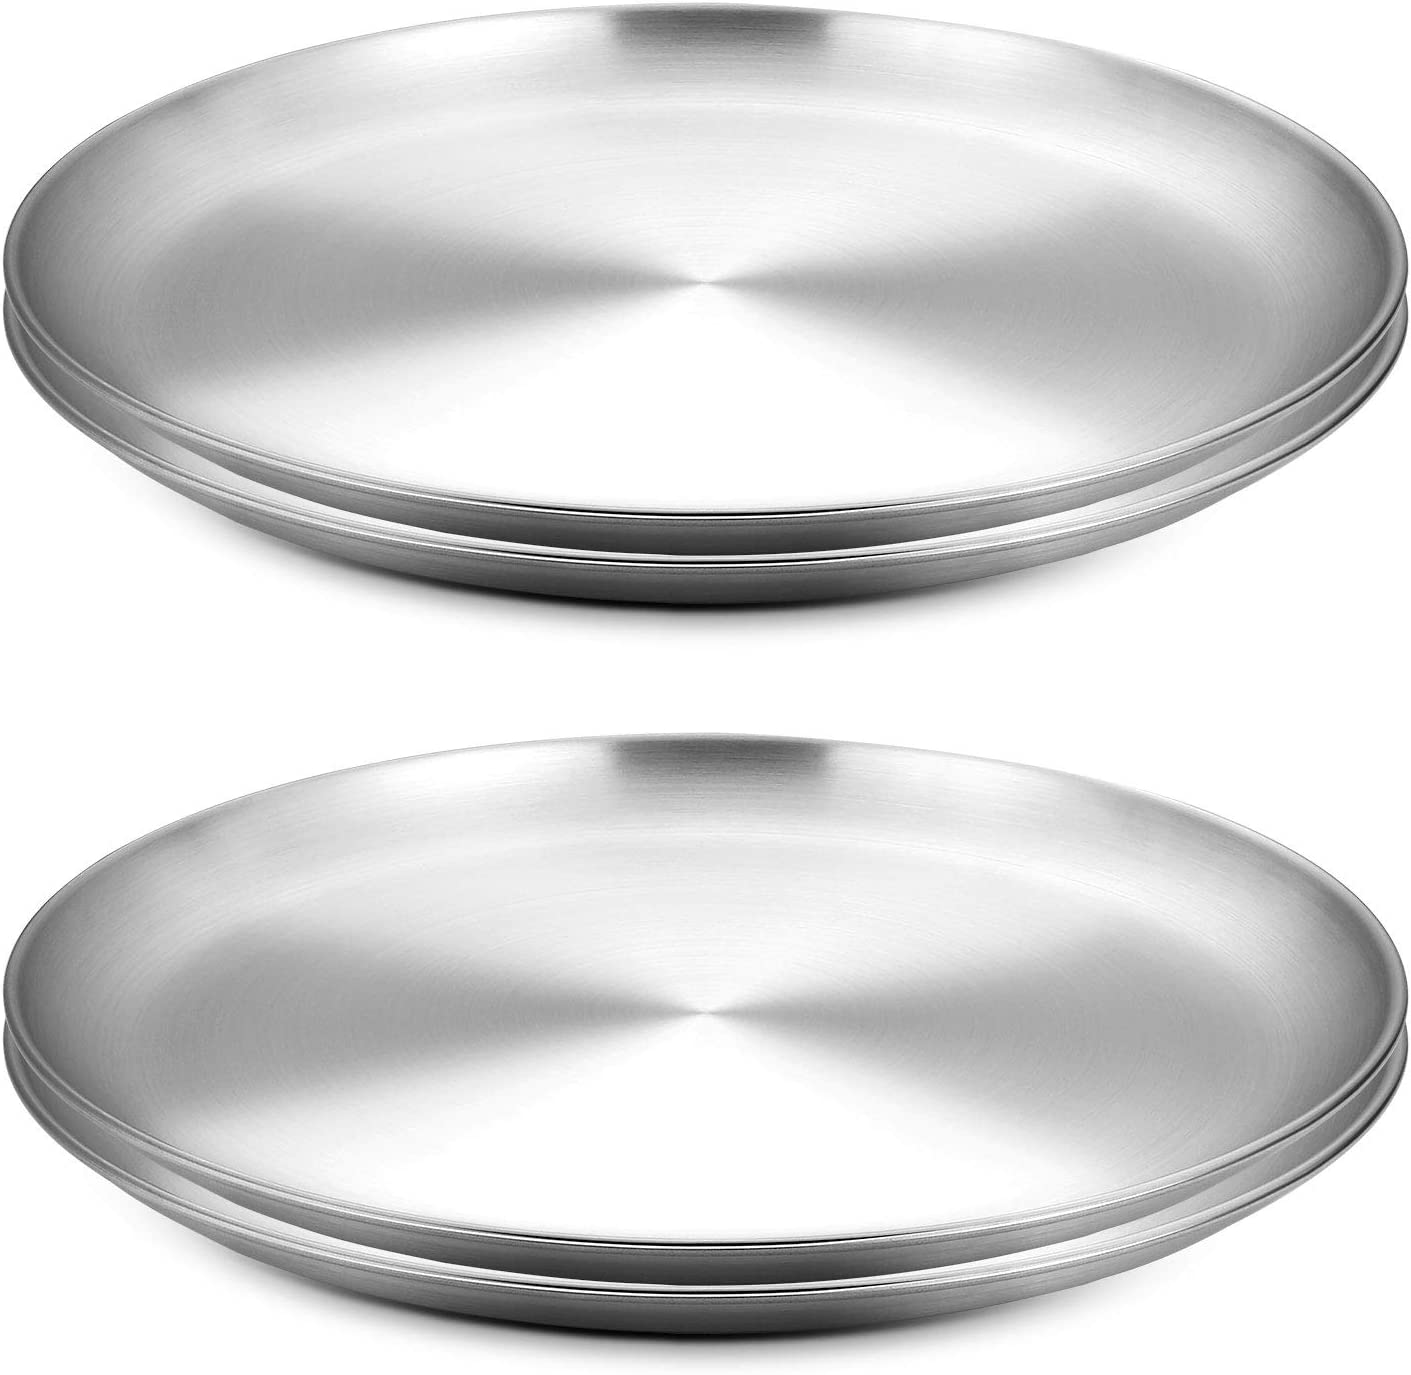 WEZVIX 8-Inch Round Pizza Pan Stainless Steel Pizza Tray for Oven Baking, Pizza Crisper Pan for Home Kitchen, Restaurant, Non-stick & Dishwasher Safe & Heavy Duty - 4 Pack